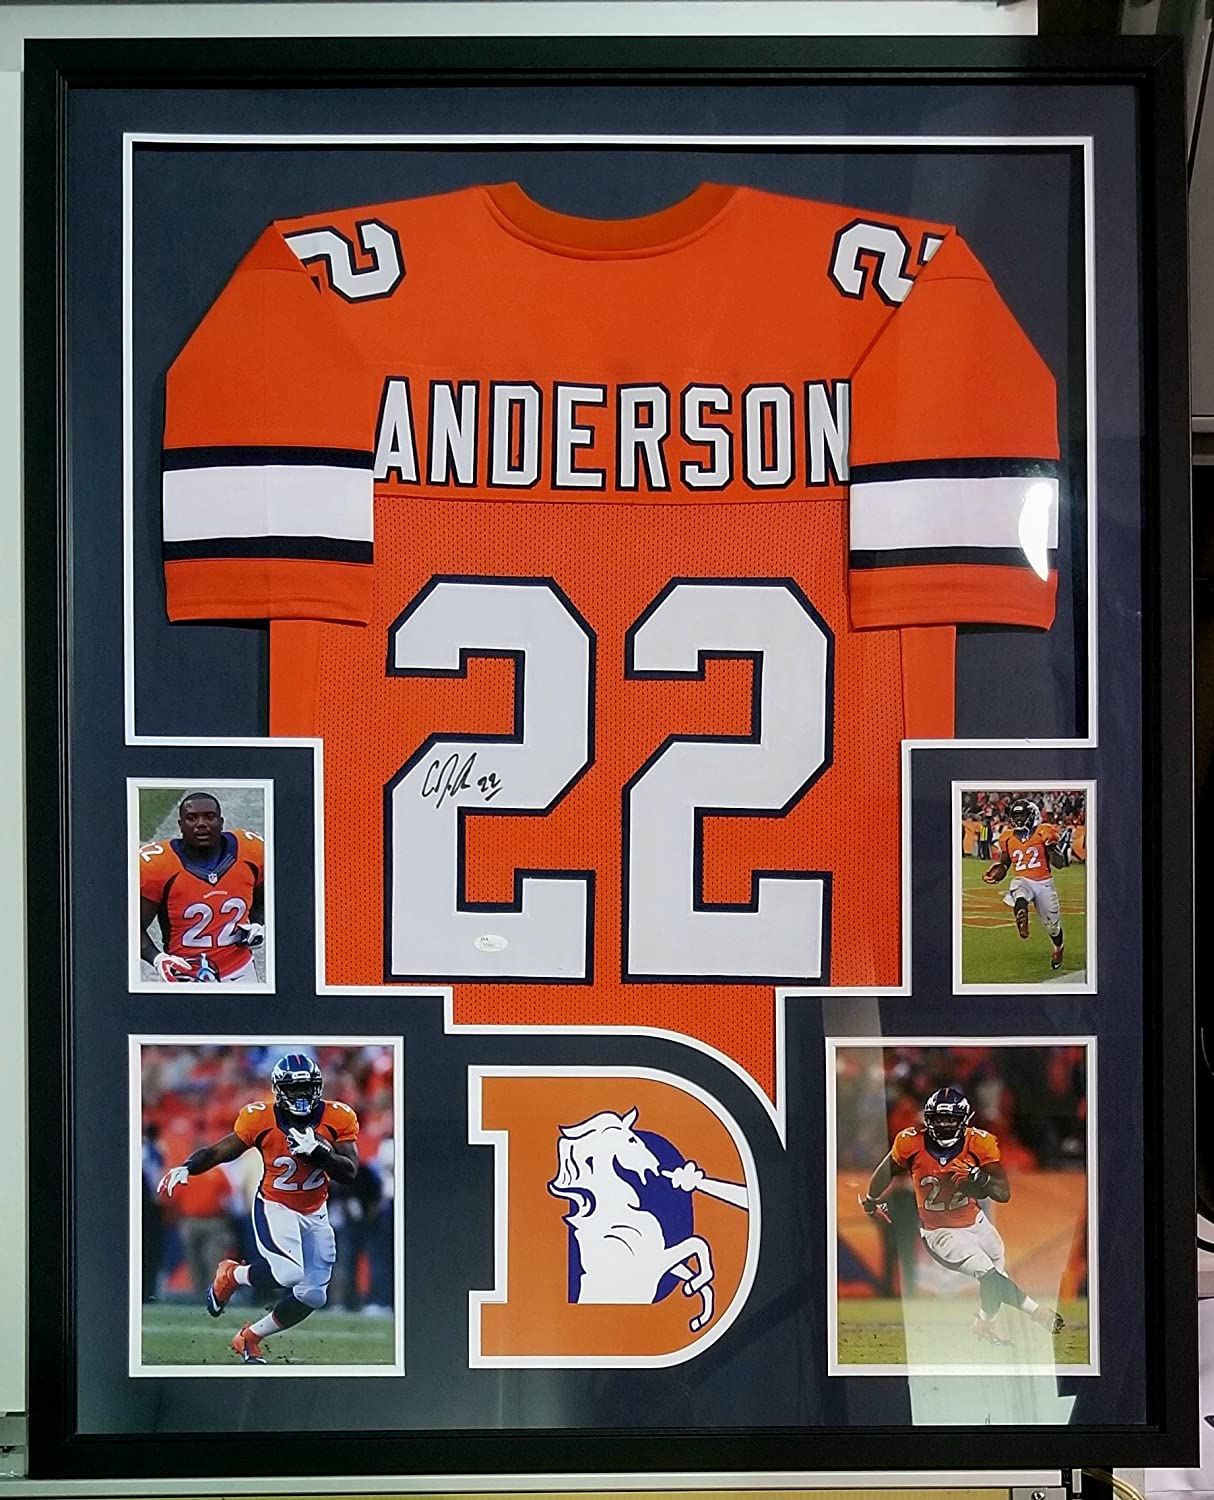 1251641daf008 Amazon.com: CJ Anderson Signed Autographed Framed Jersey Denver ...